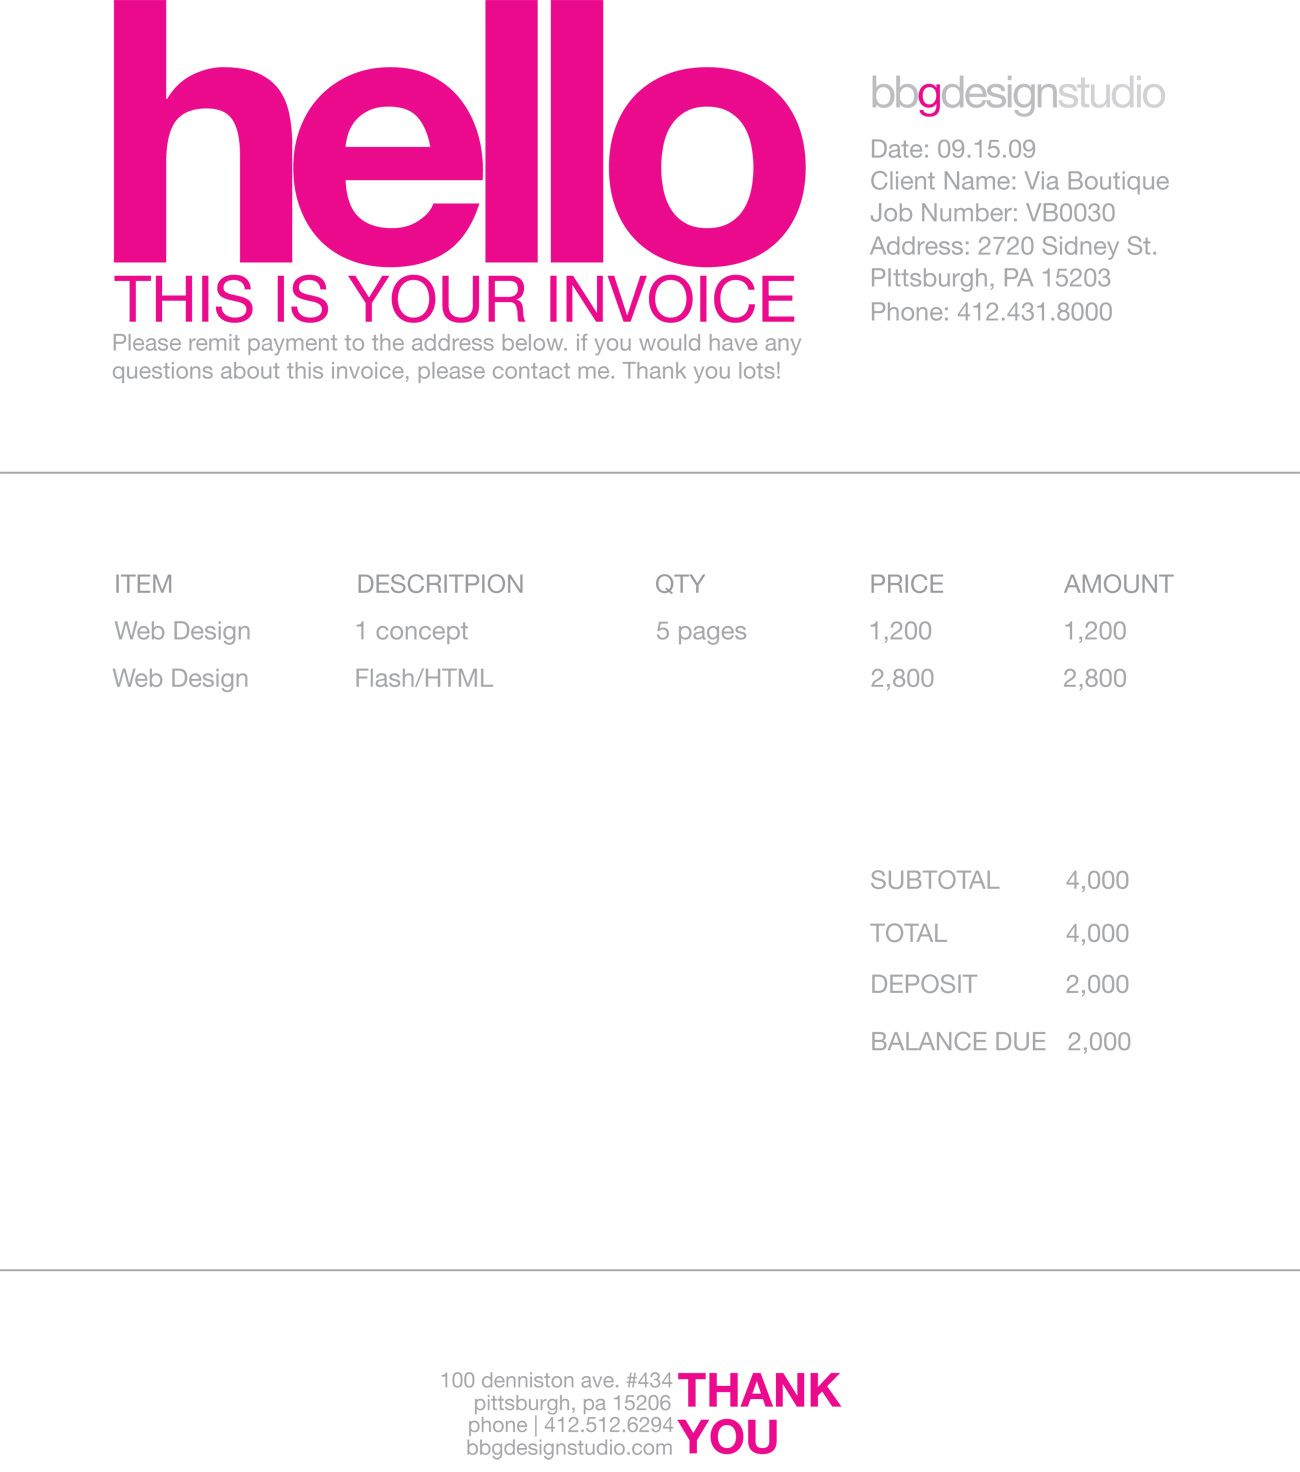 Laceychabertus  Unusual  Images About Invoice Design On Pinterest With Fair Invoice Processing Service Besides Selective Invoice Discounting Furthermore Meaning Of Invoice In Accounting With Alluring Free Invoices Templates Online Also Free Invoice Template Australia In Addition  Honda Accord Sport Invoice And Free Plumbing Invoice Template As Well As Invoice Template Samples Additionally Invoice Payment Terms Uk From Pinterestcom With Laceychabertus  Fair  Images About Invoice Design On Pinterest With Alluring Invoice Processing Service Besides Selective Invoice Discounting Furthermore Meaning Of Invoice In Accounting And Unusual Free Invoices Templates Online Also Free Invoice Template Australia In Addition  Honda Accord Sport Invoice From Pinterestcom